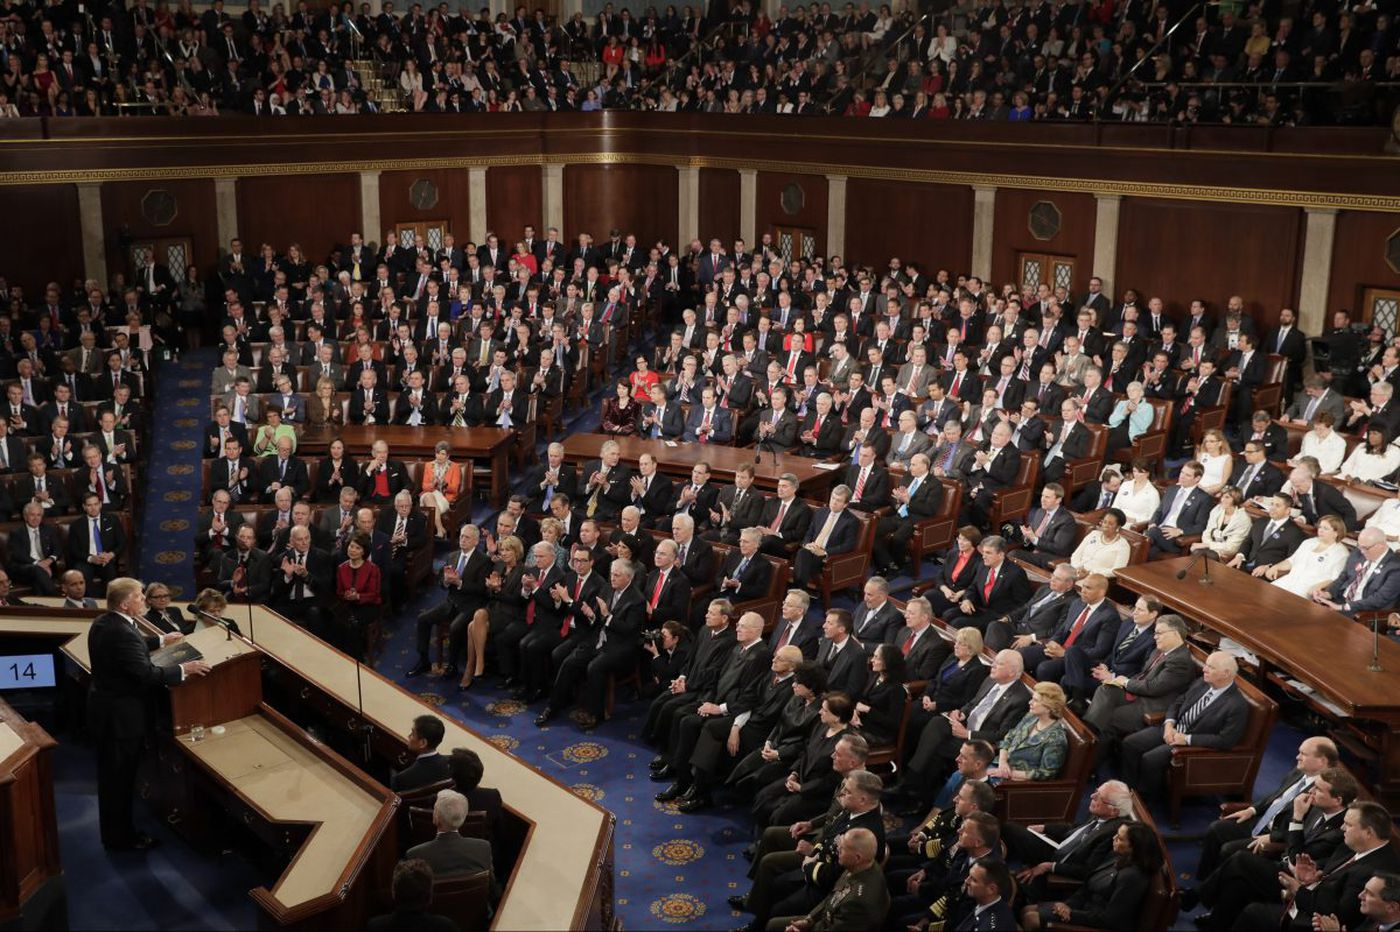 State of the Union 2018: The date, time, TV channels and more for Donald Trump's speech